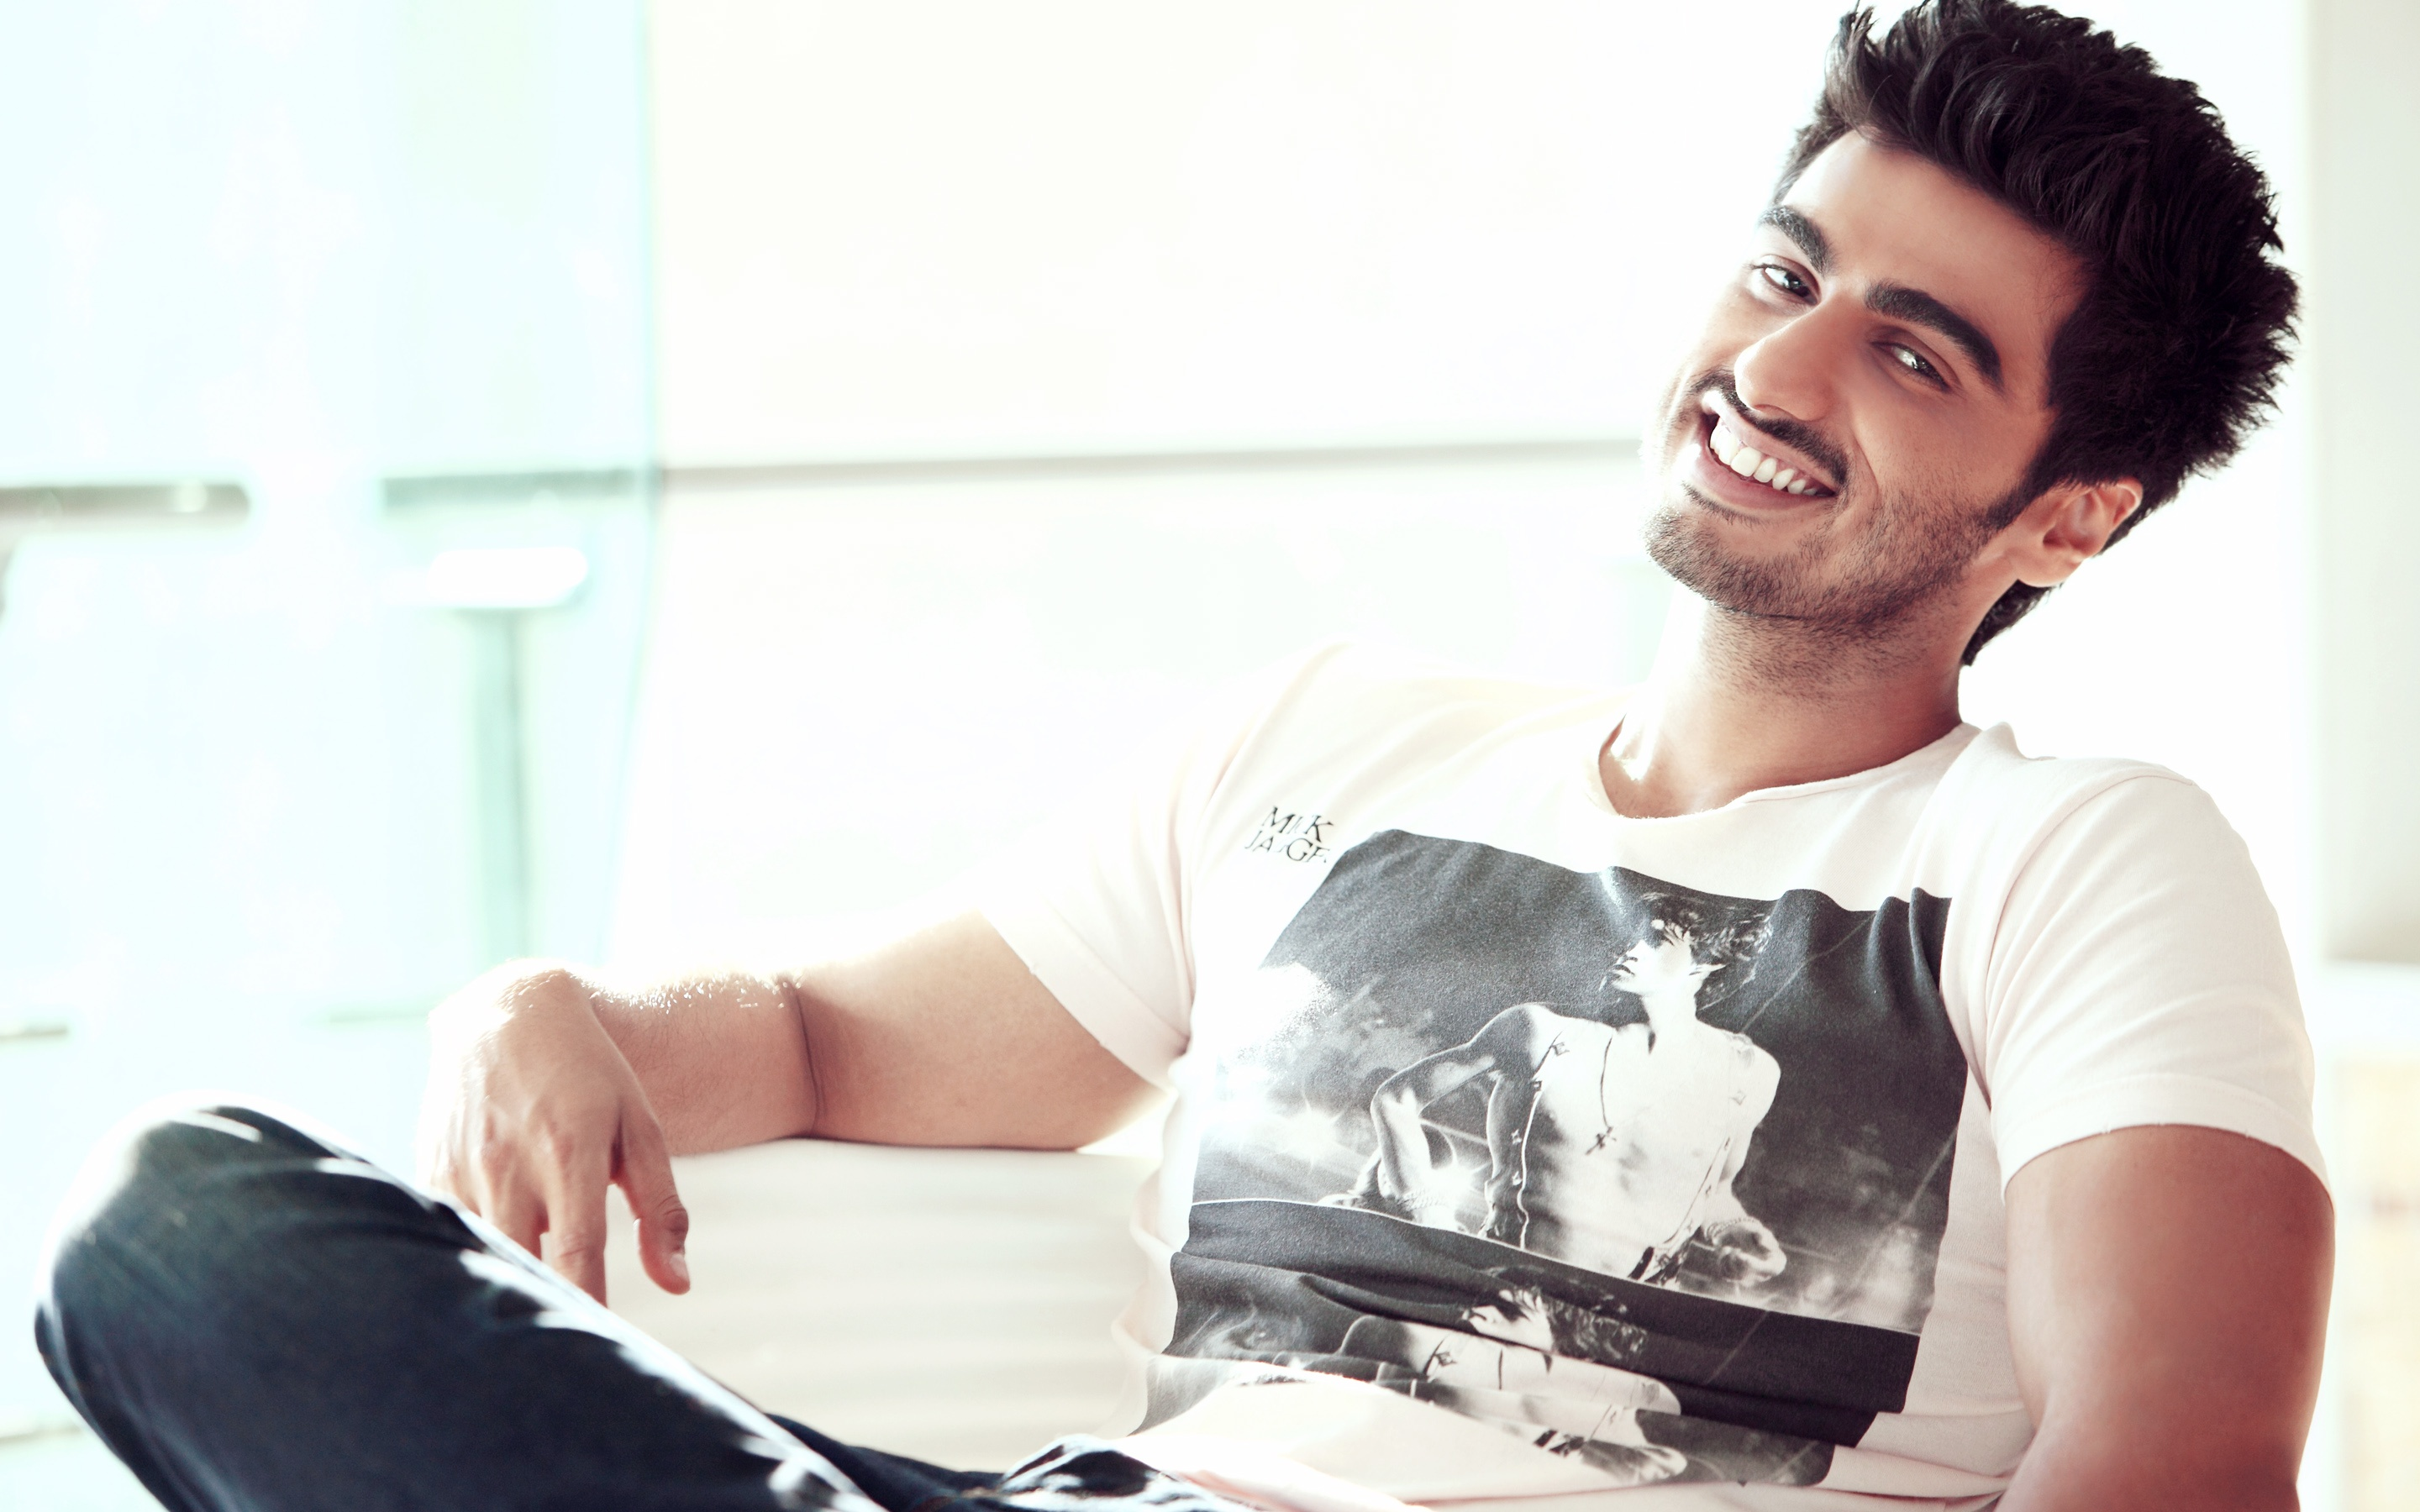 Indian Actor Arjun Kapoor Wallpapers in jpg format for download 2880x1800